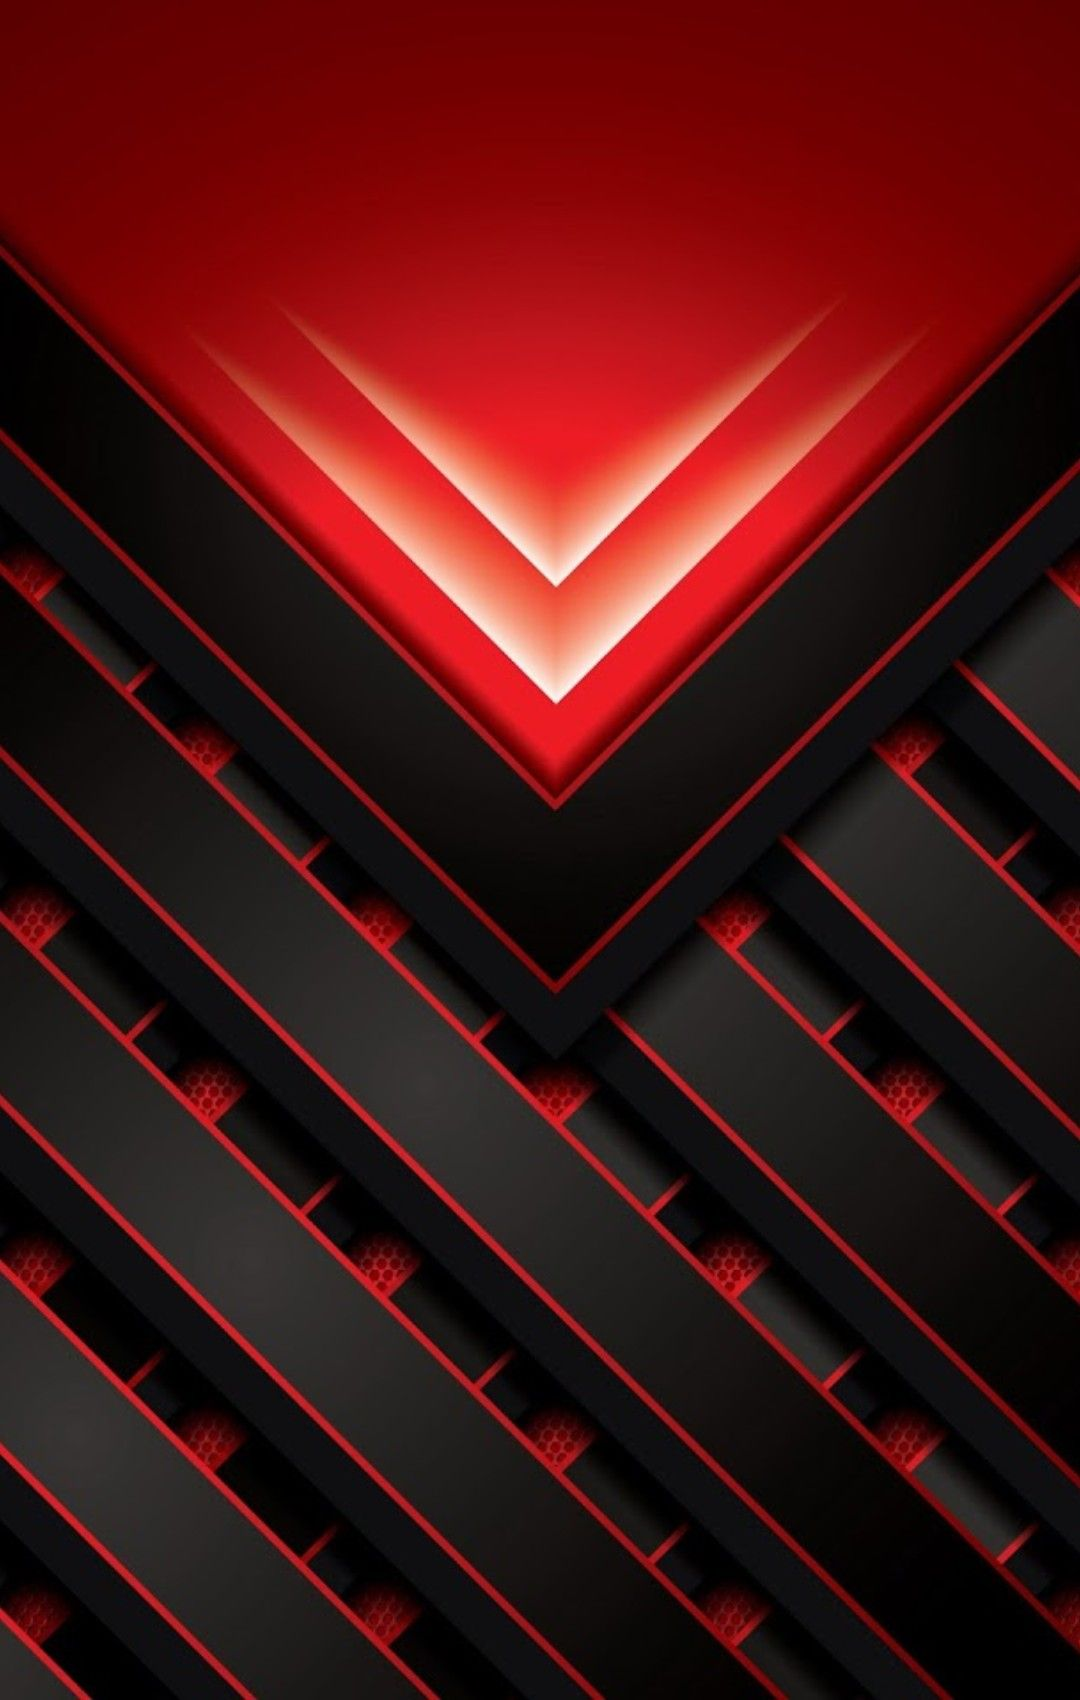 Red and Black Geometric Wallpaper | Abstract iphone ...